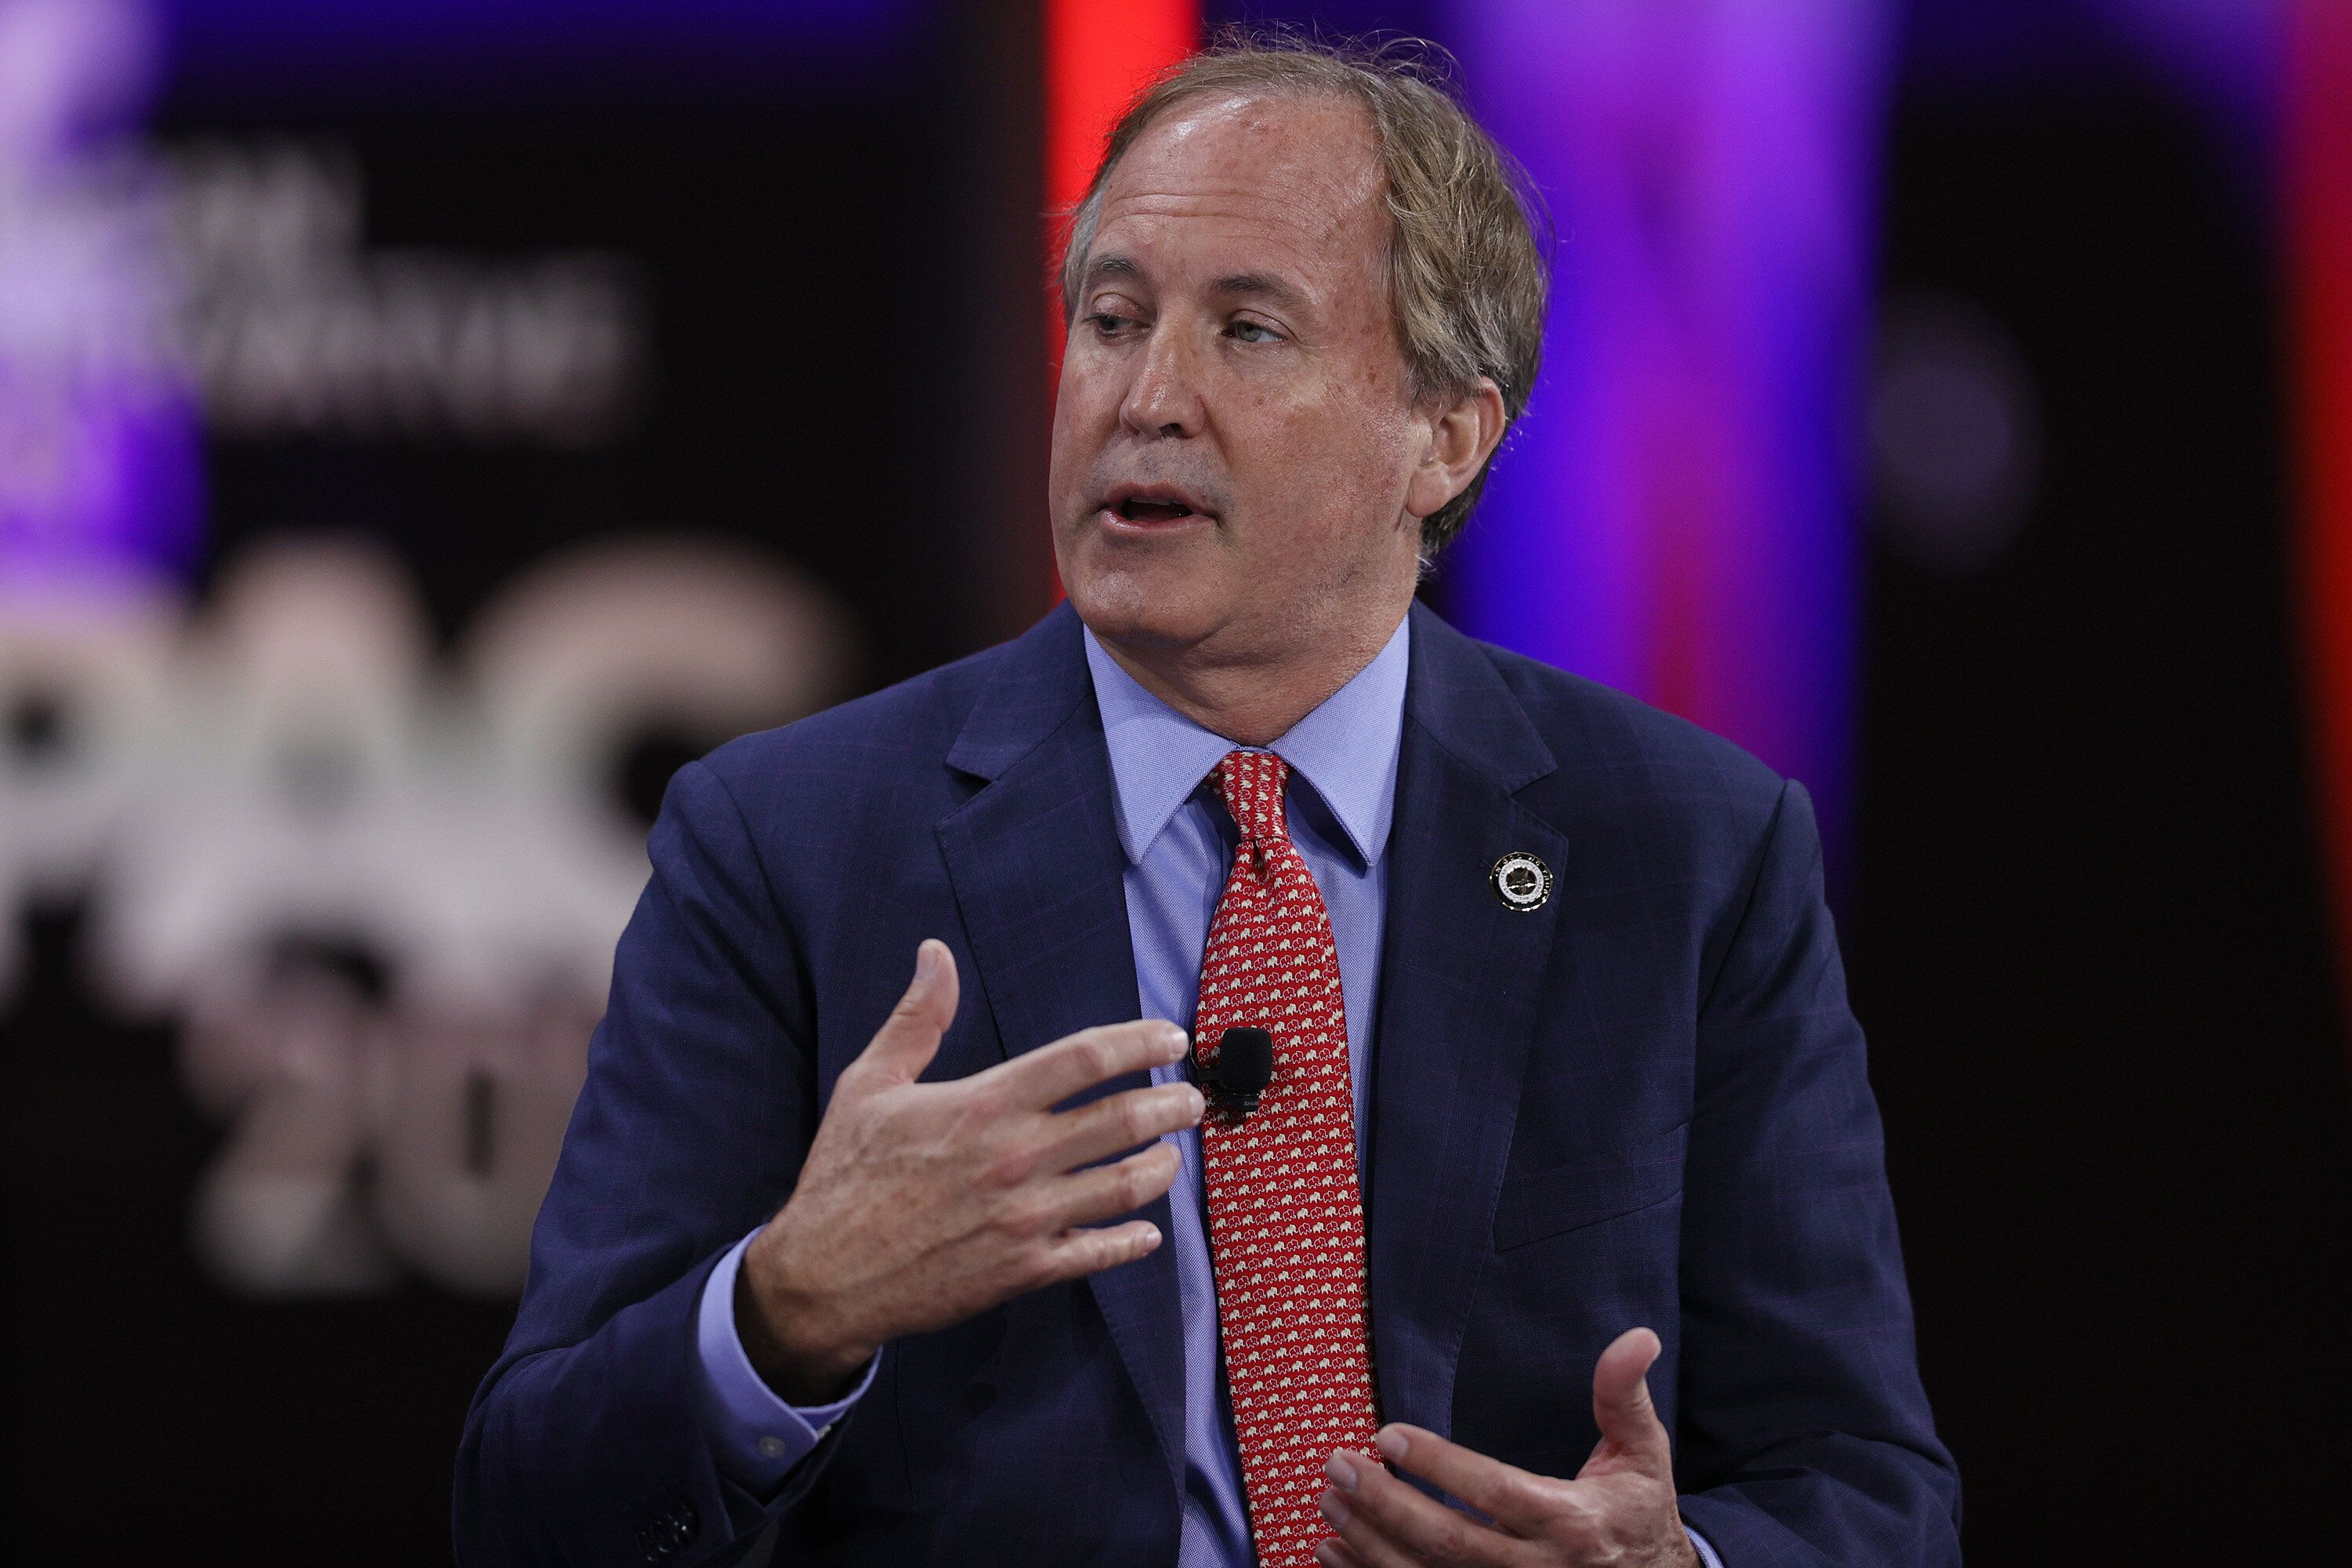 Ken Paxton, Texas Attorney General, speaks during a panel discussion about the Devaluing of American Citizenship during the C